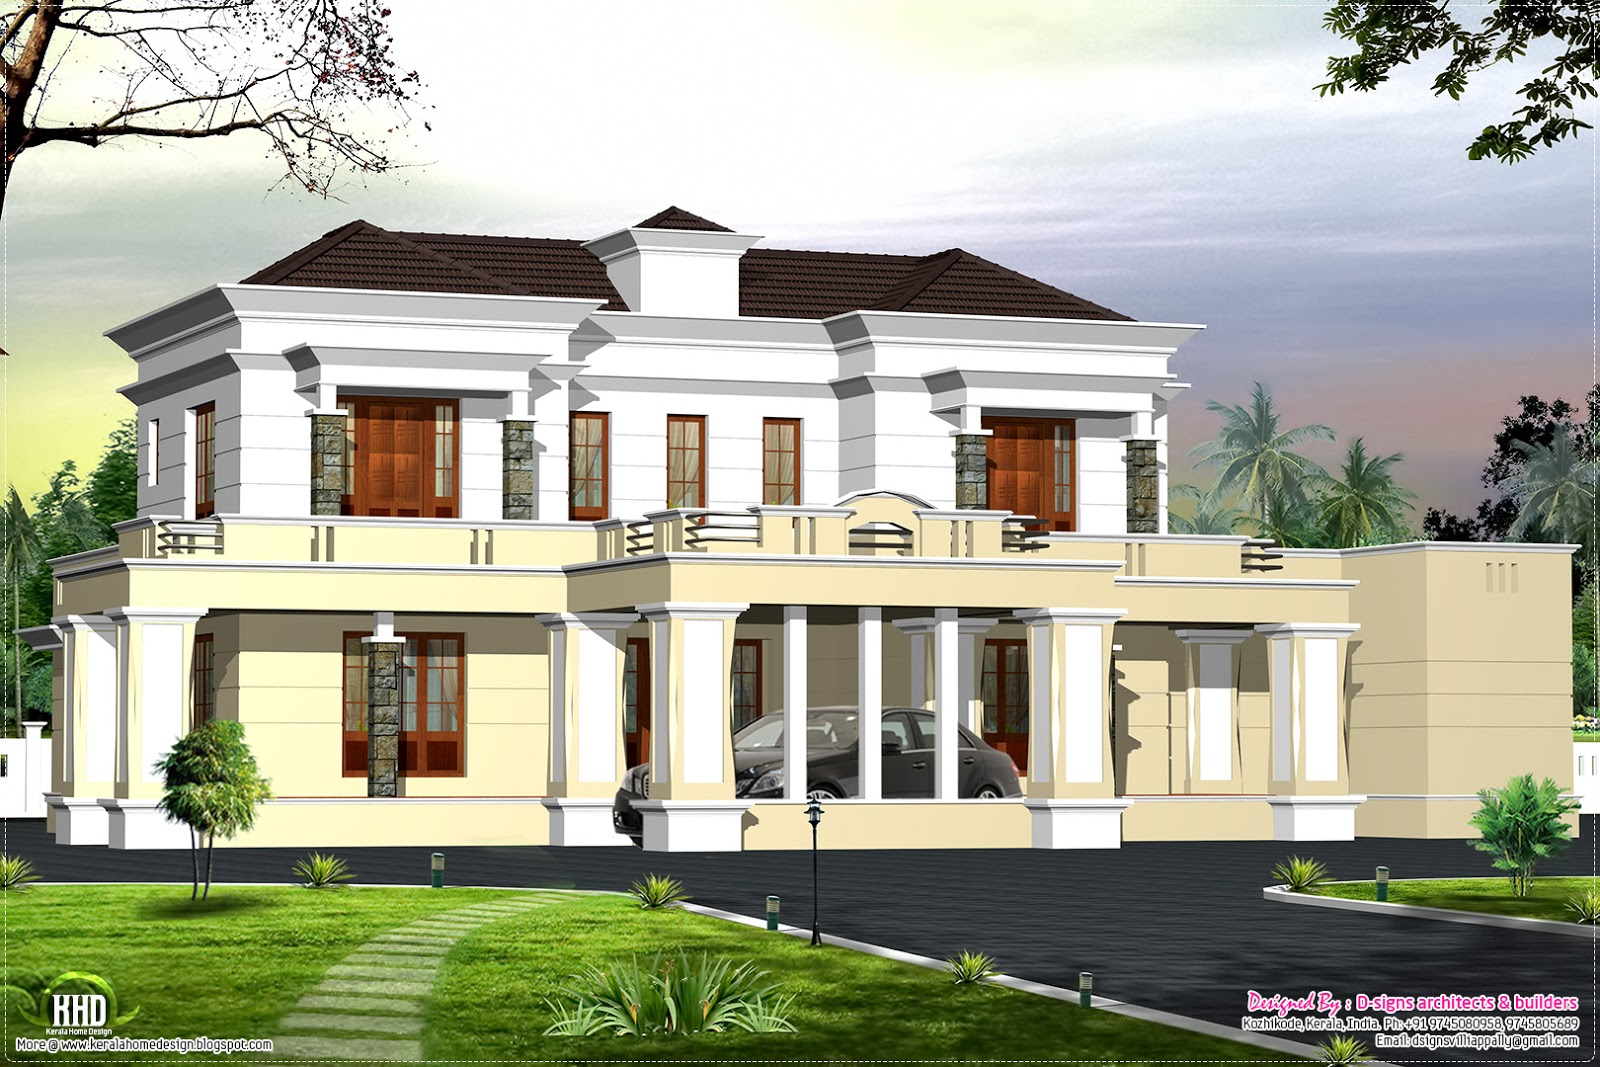 Victorian style luxury home design kerala home design for Luxury house designs and floor plans